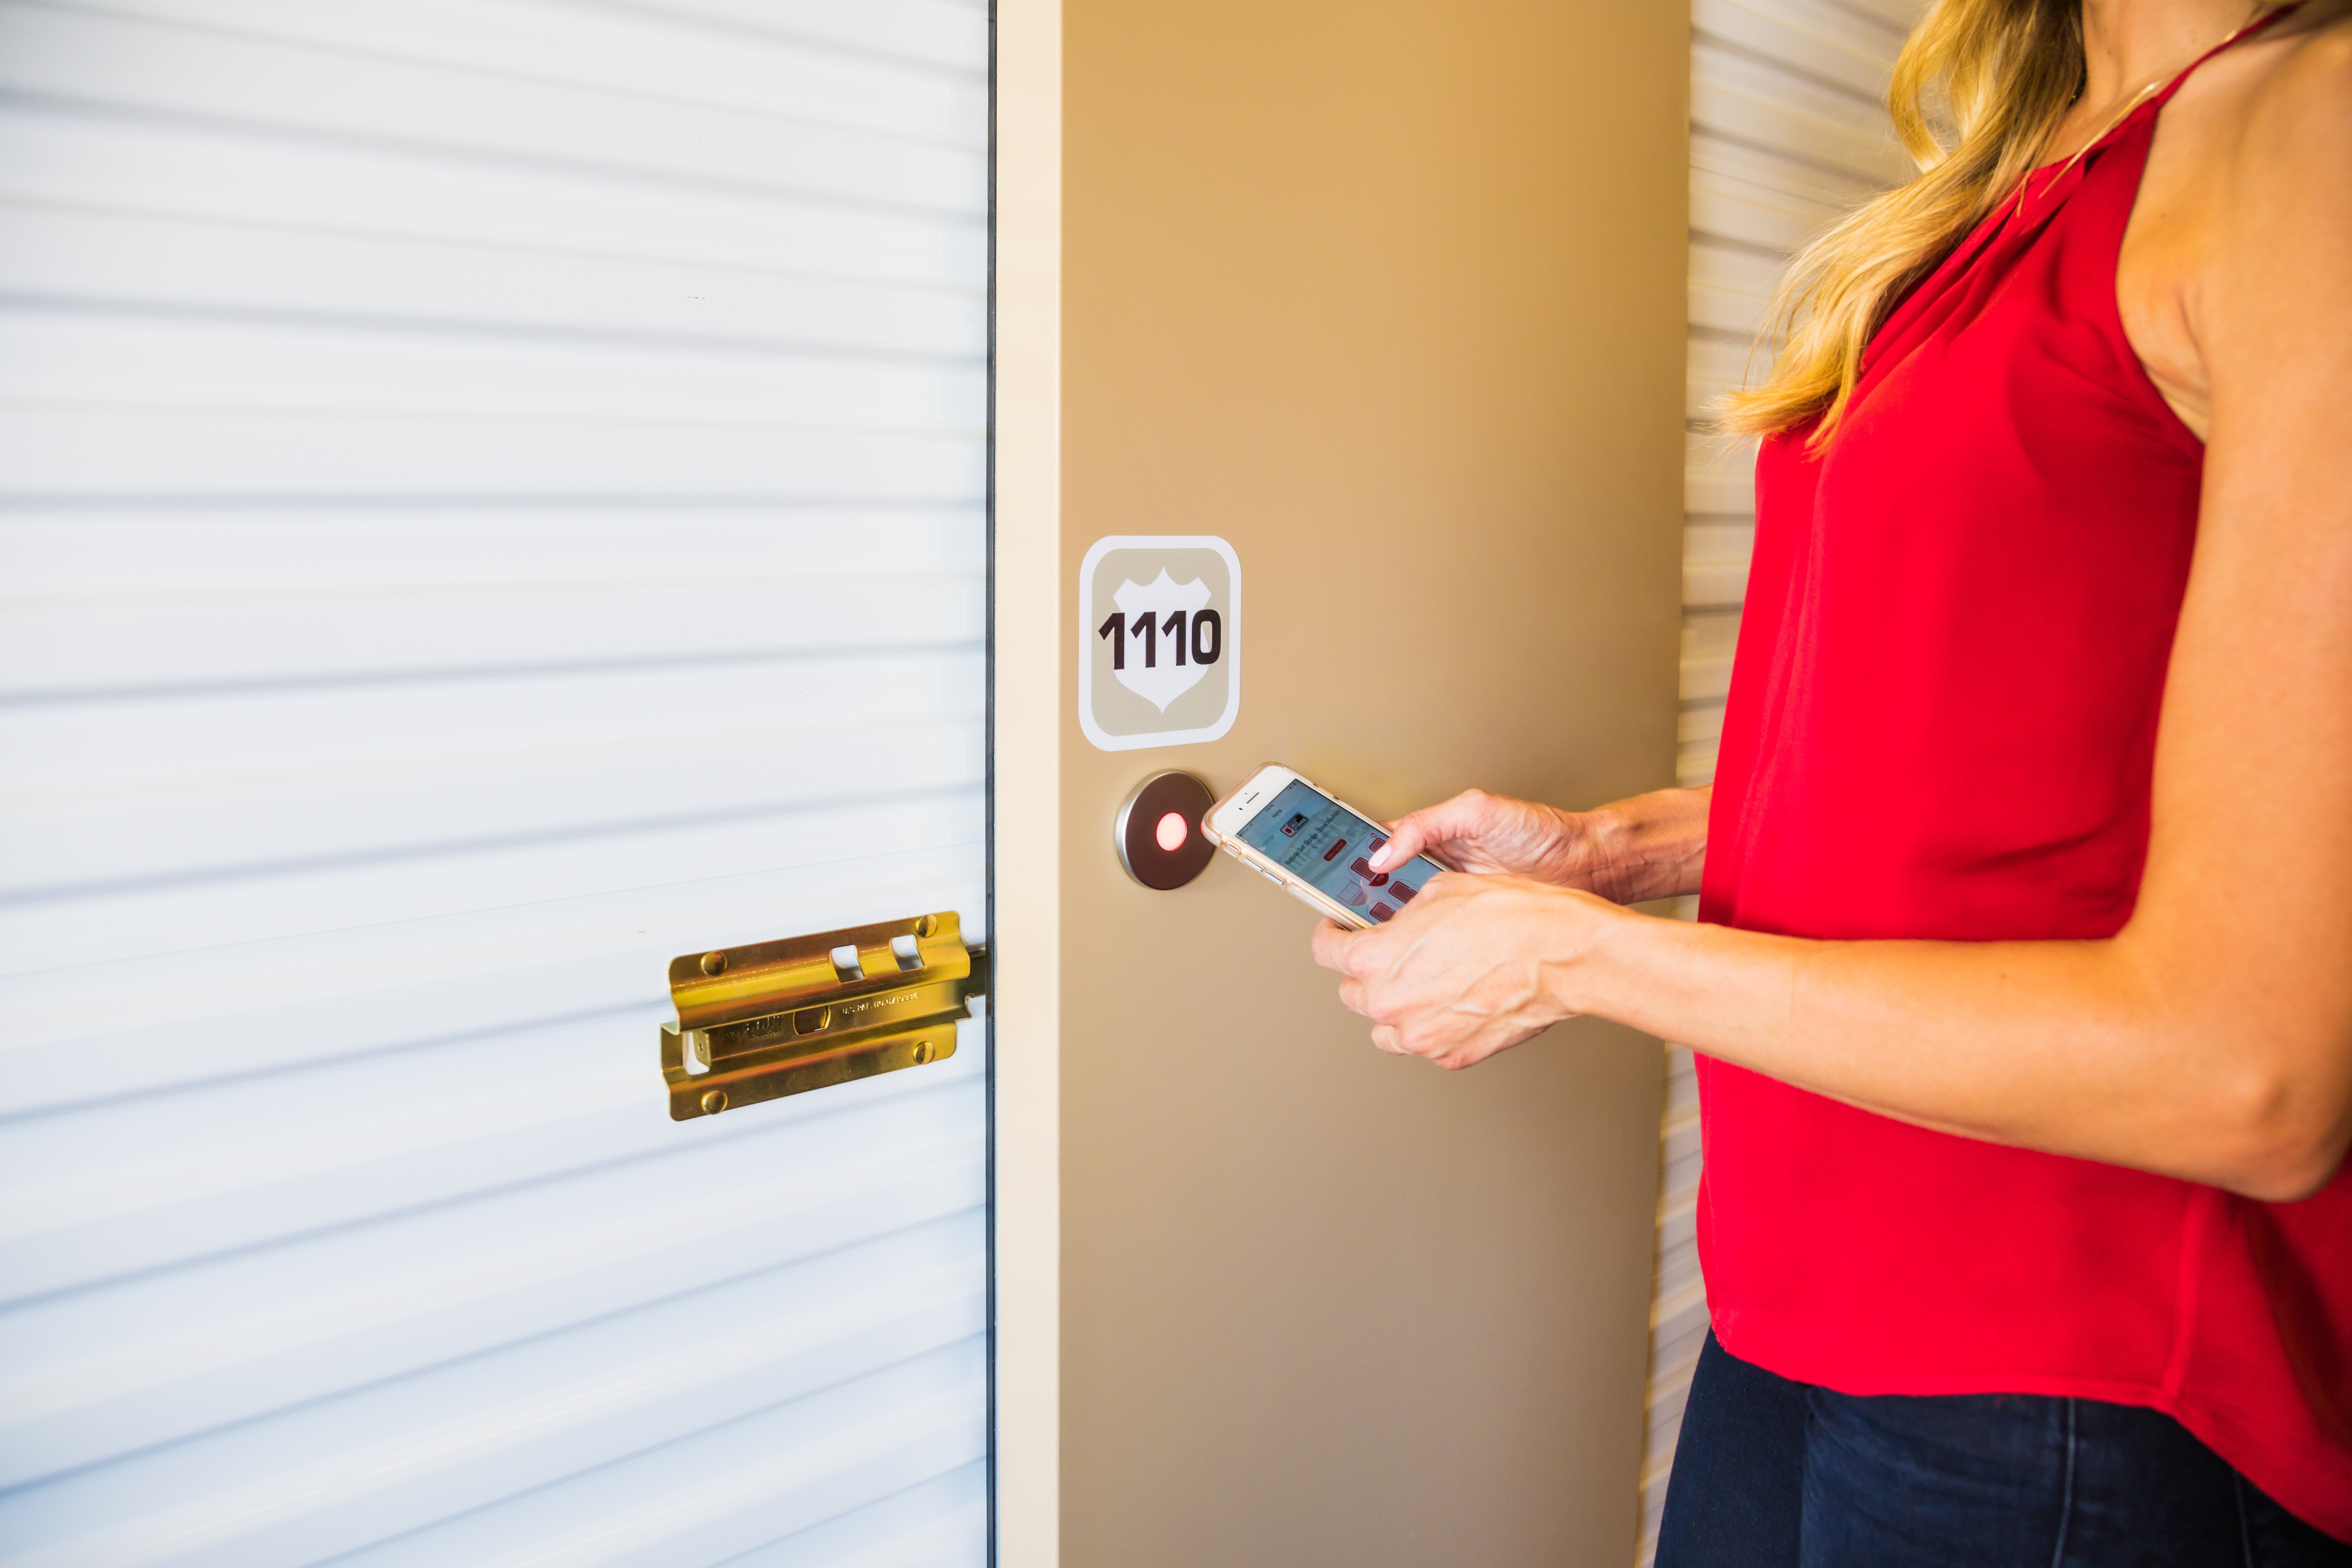 TENANT USING SMARTPHONE TO ACCESS STORAGE UNIT